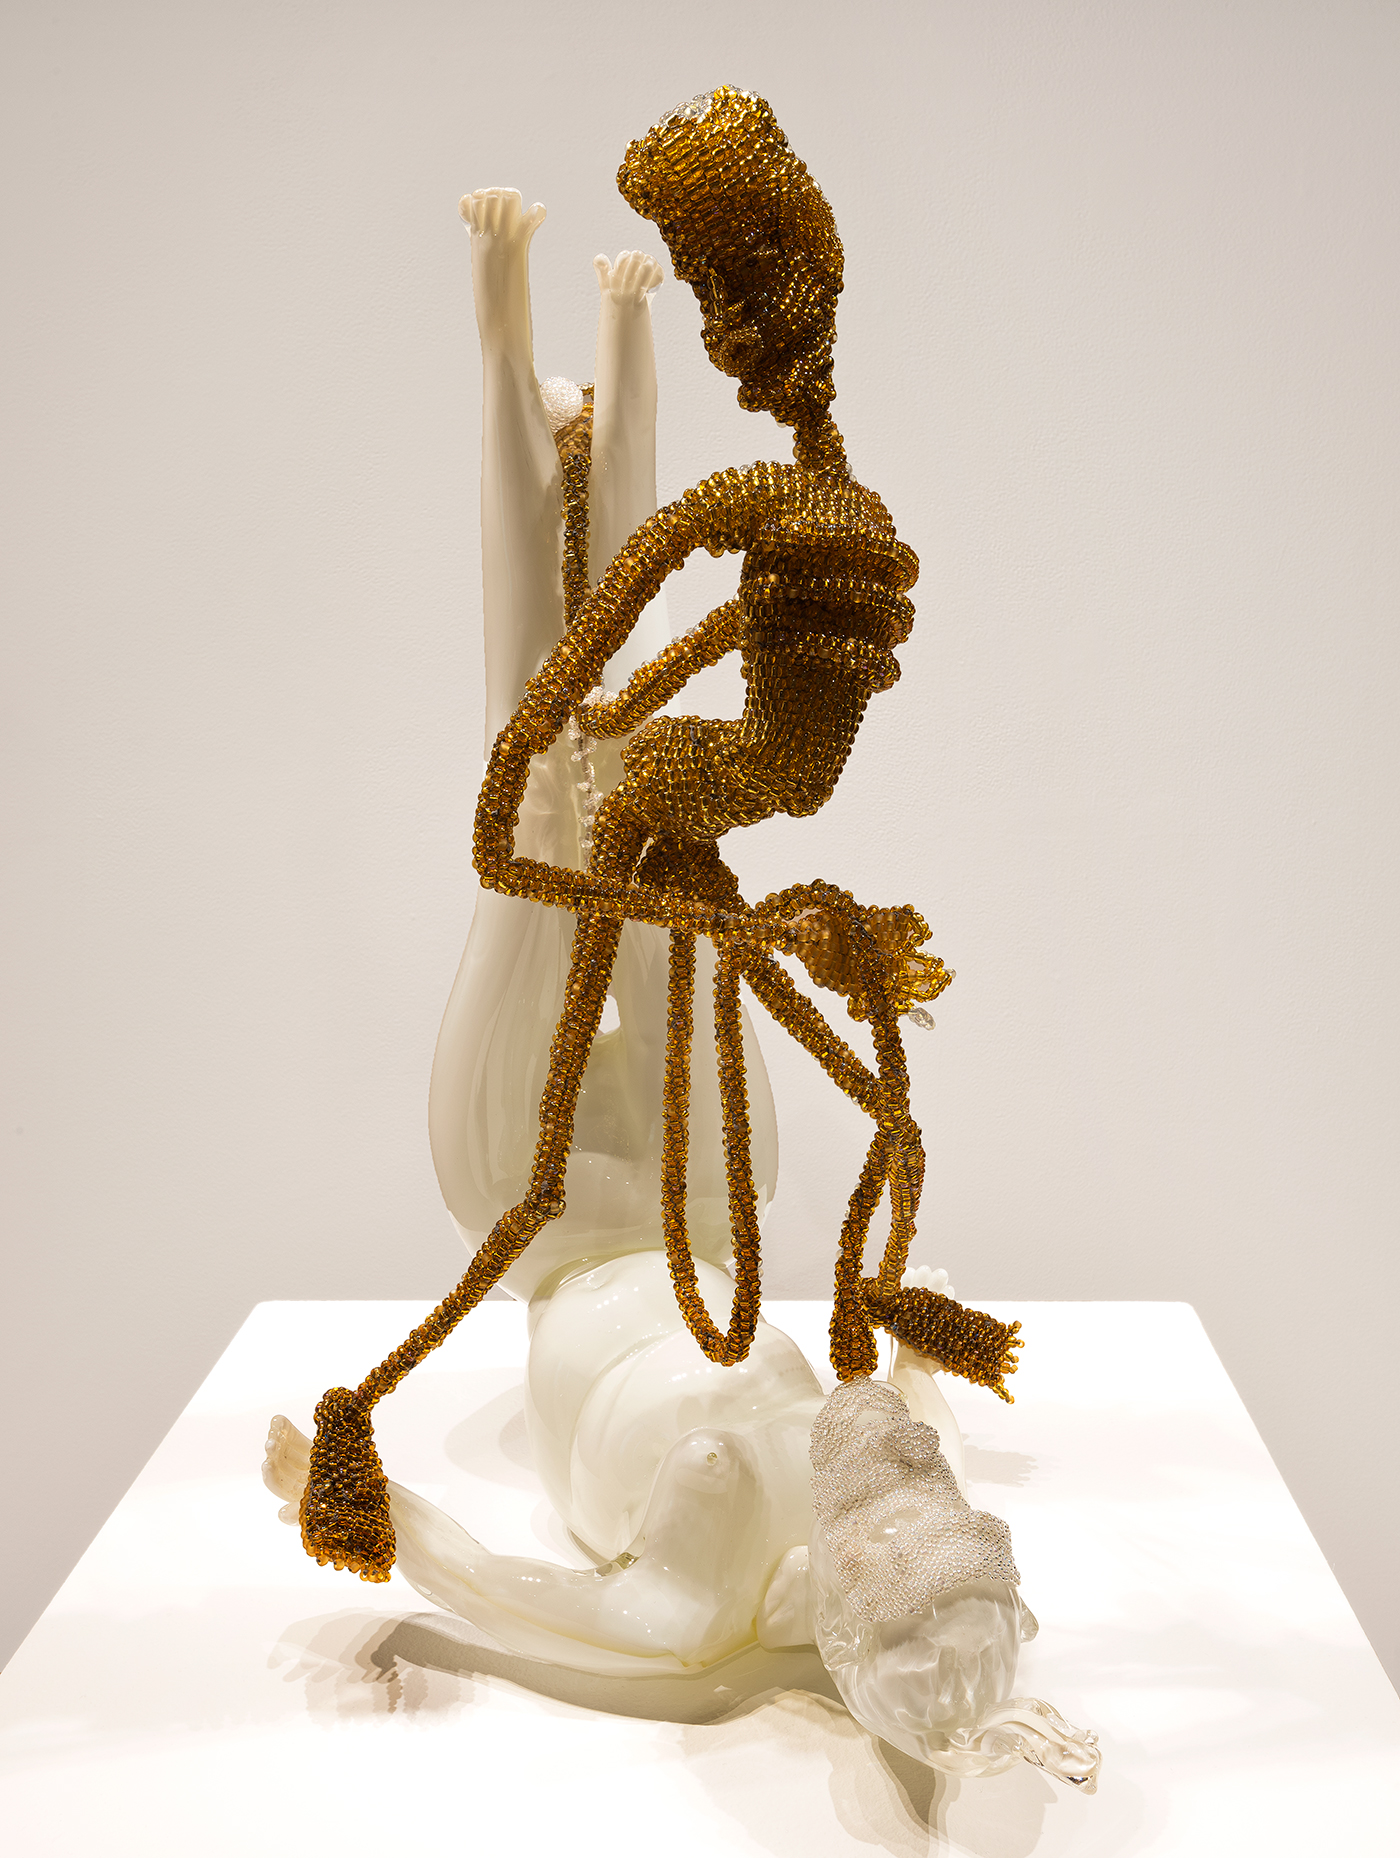 """Joyce J. Scott, """" Lewd #2"""" (2013), hand-blown Murano glass processes with beads, wire, and thread, 22 1/2 x 14 x 16 in (photo by Michael Koryta, courtesy Goya Contemporary)"""